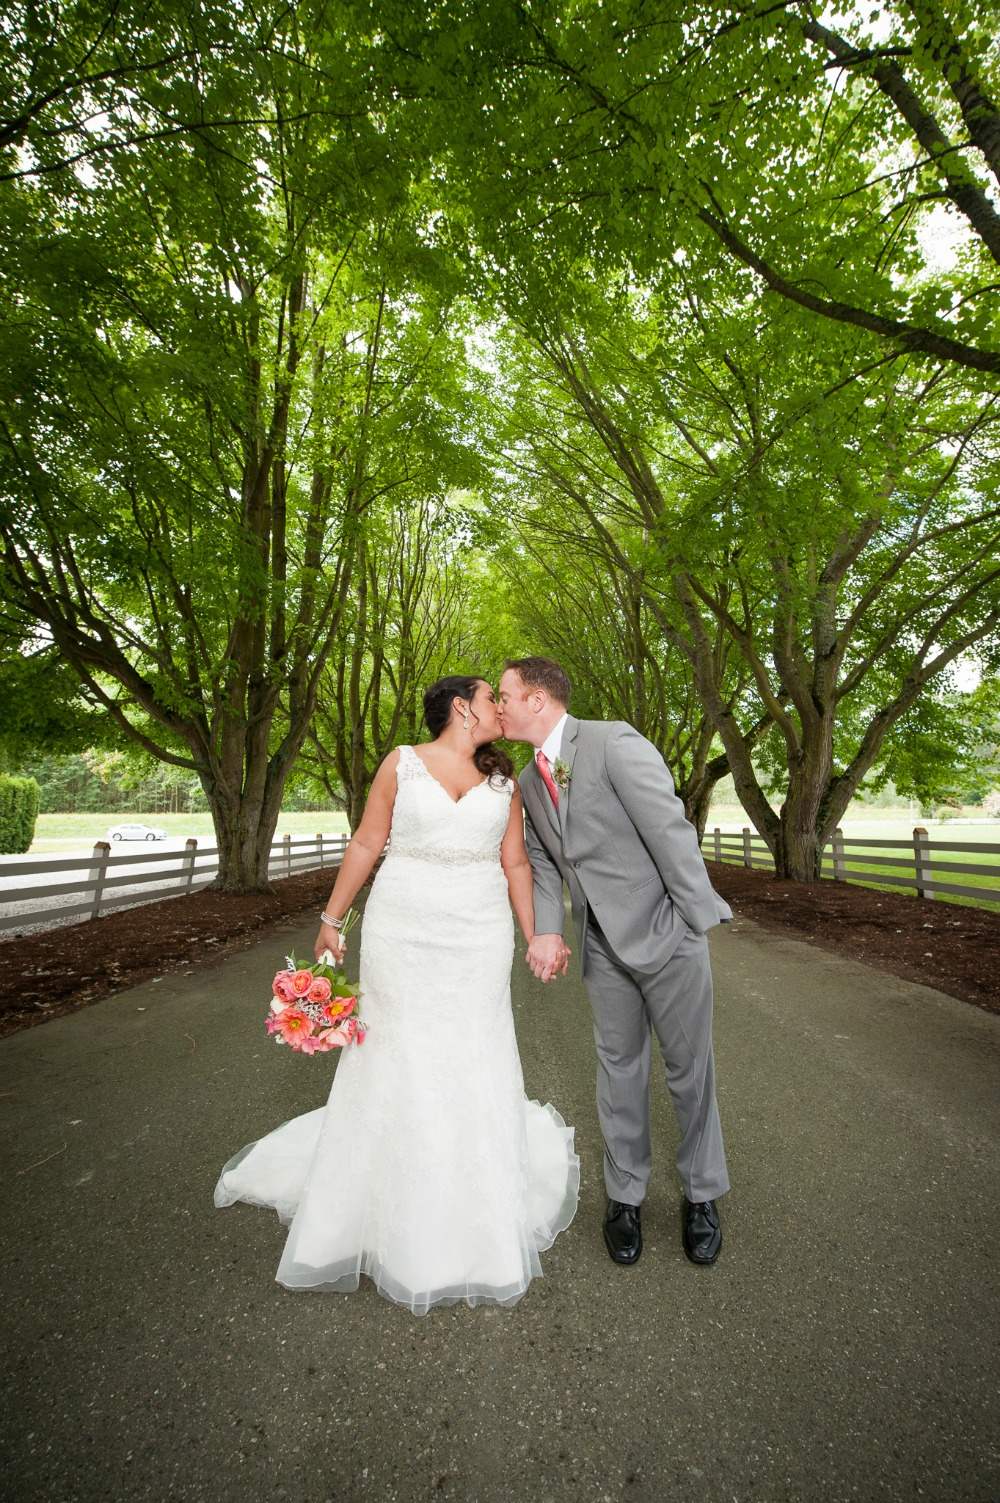 countrybouquetsfloral-natalieandscott-wedding-lucashenningphotographic-009